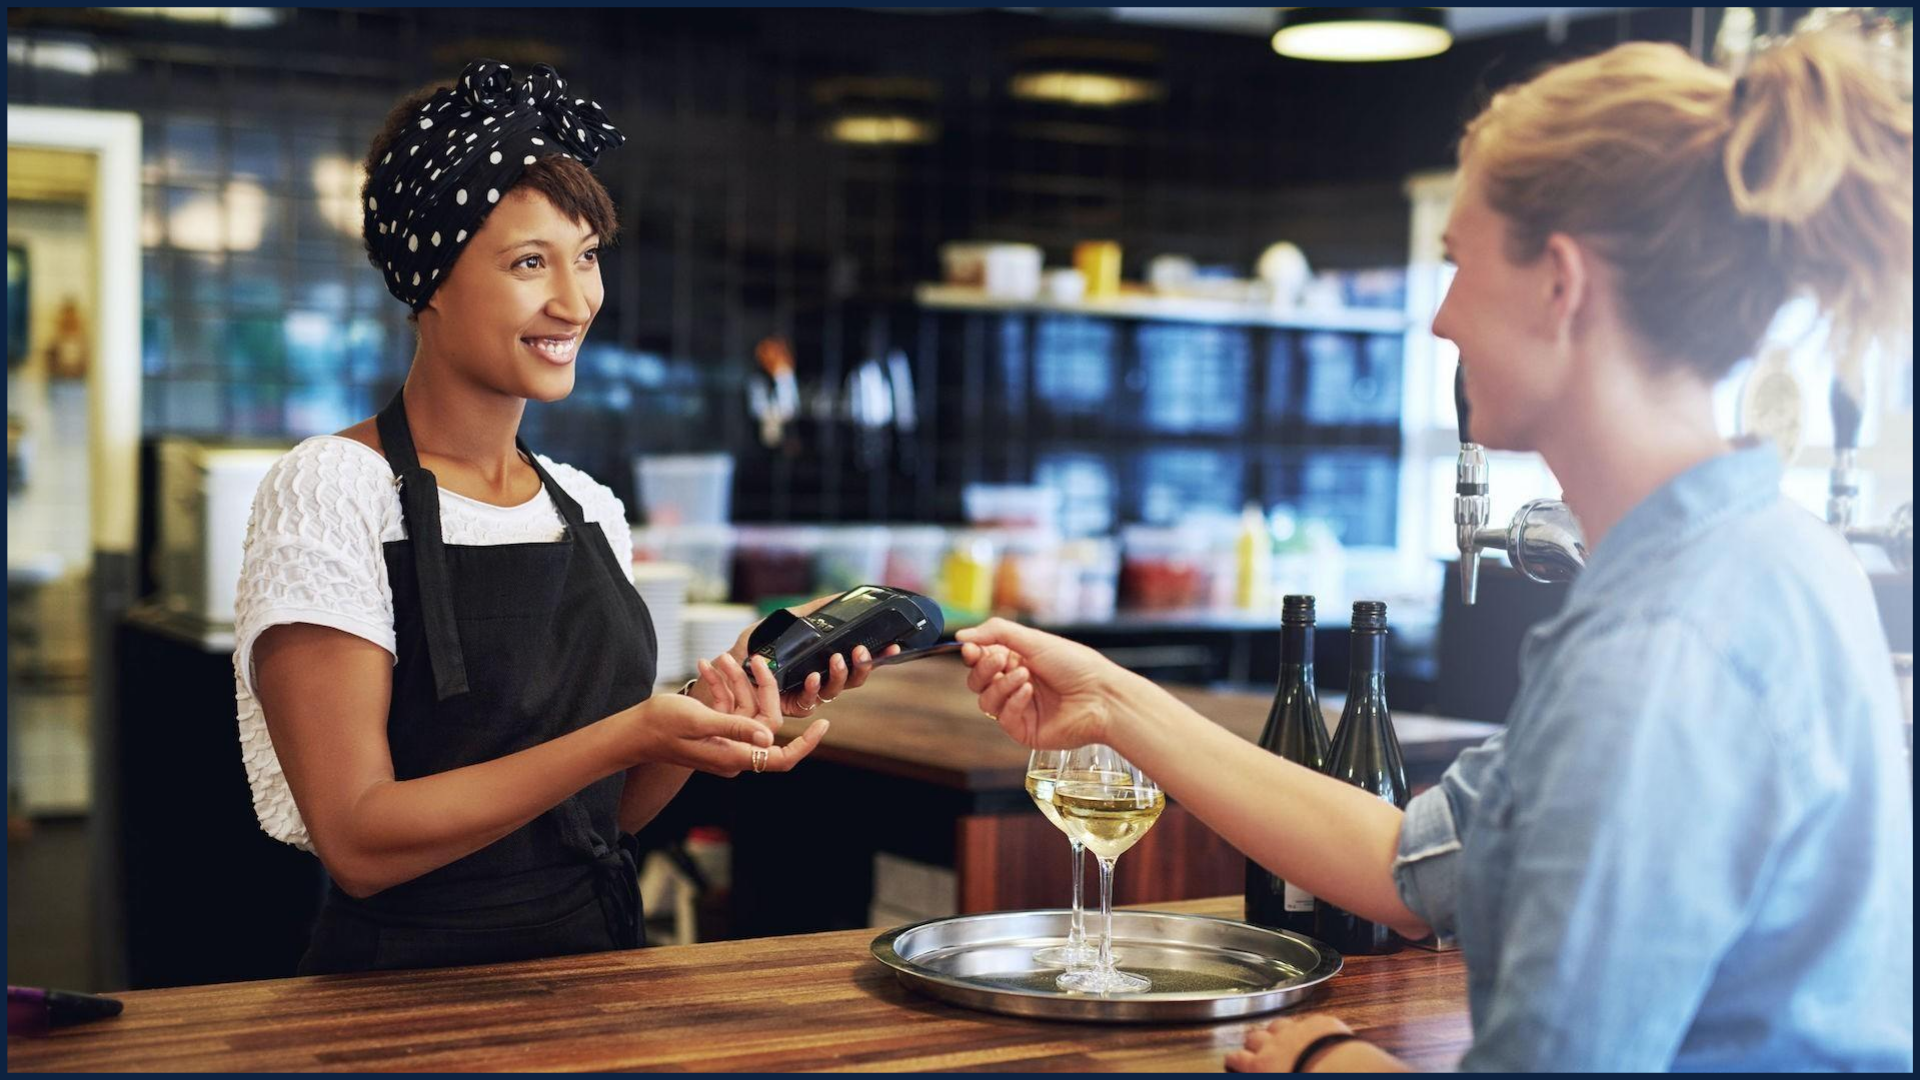 Customer paying with card at the cashier